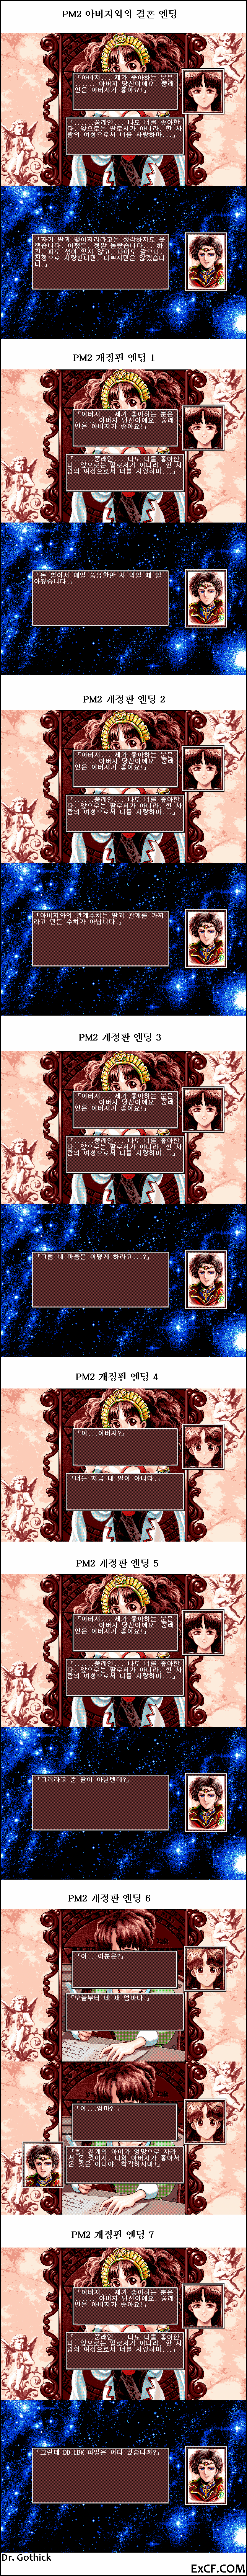 20150208-05.png